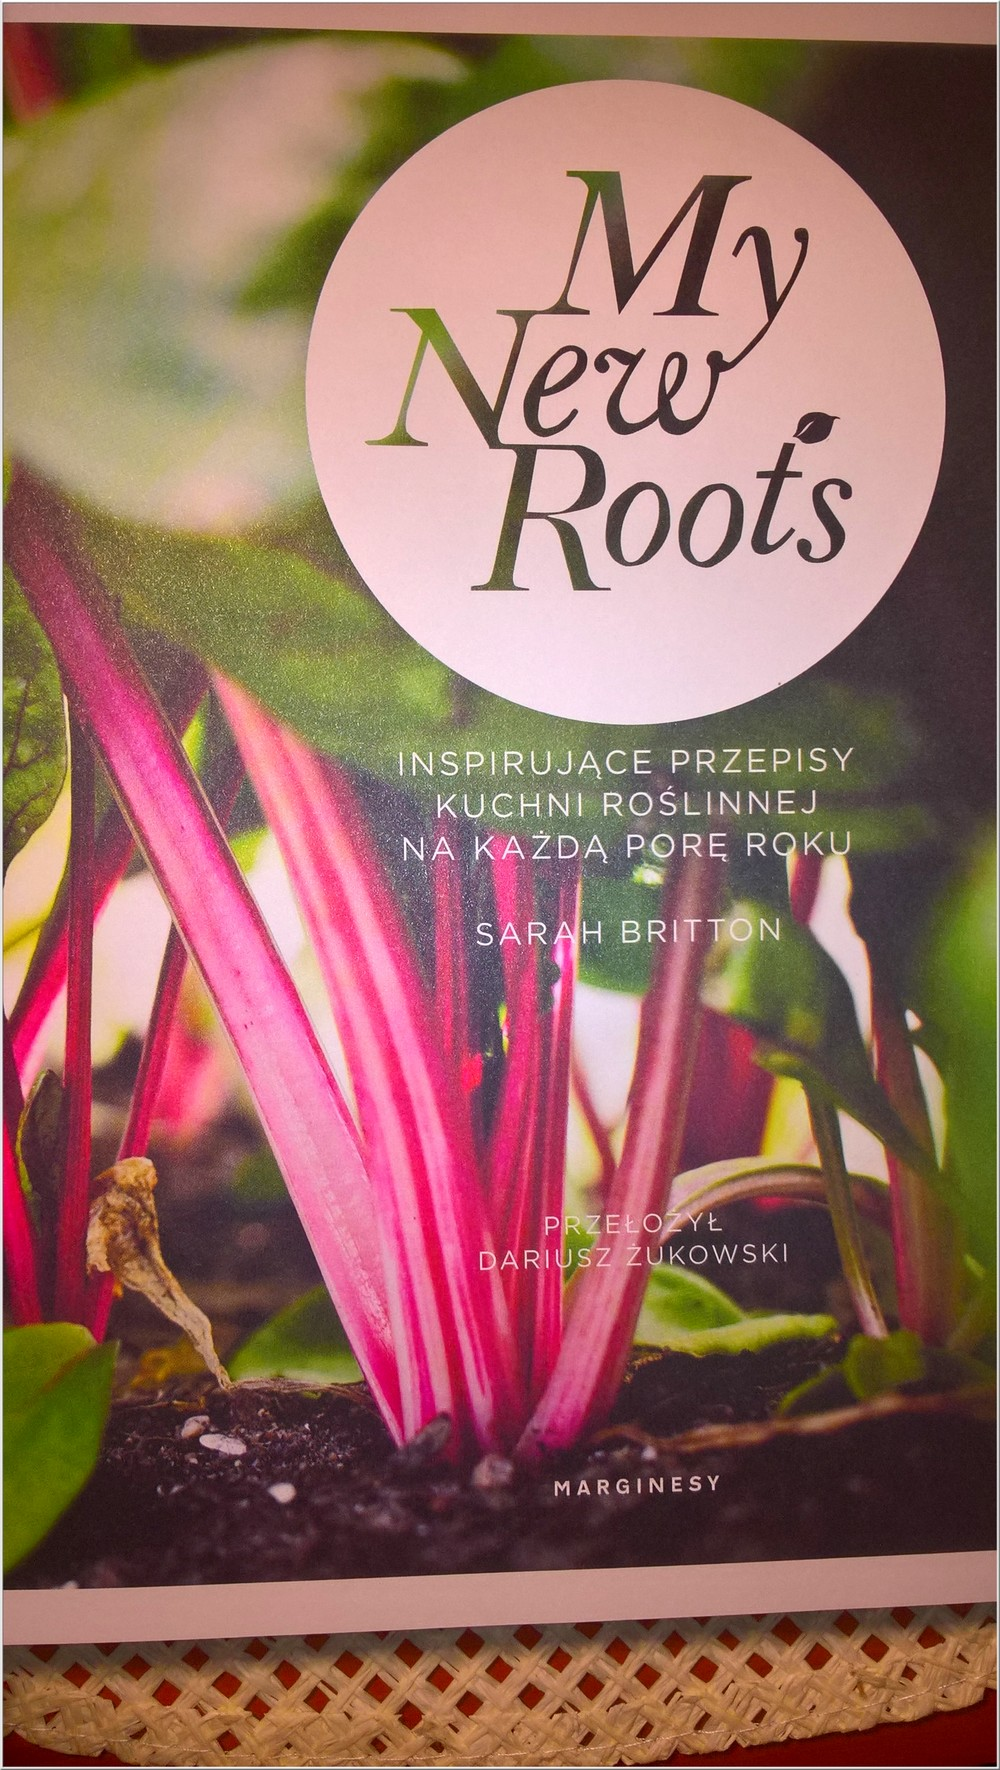 my-new-roots-recenzja-2